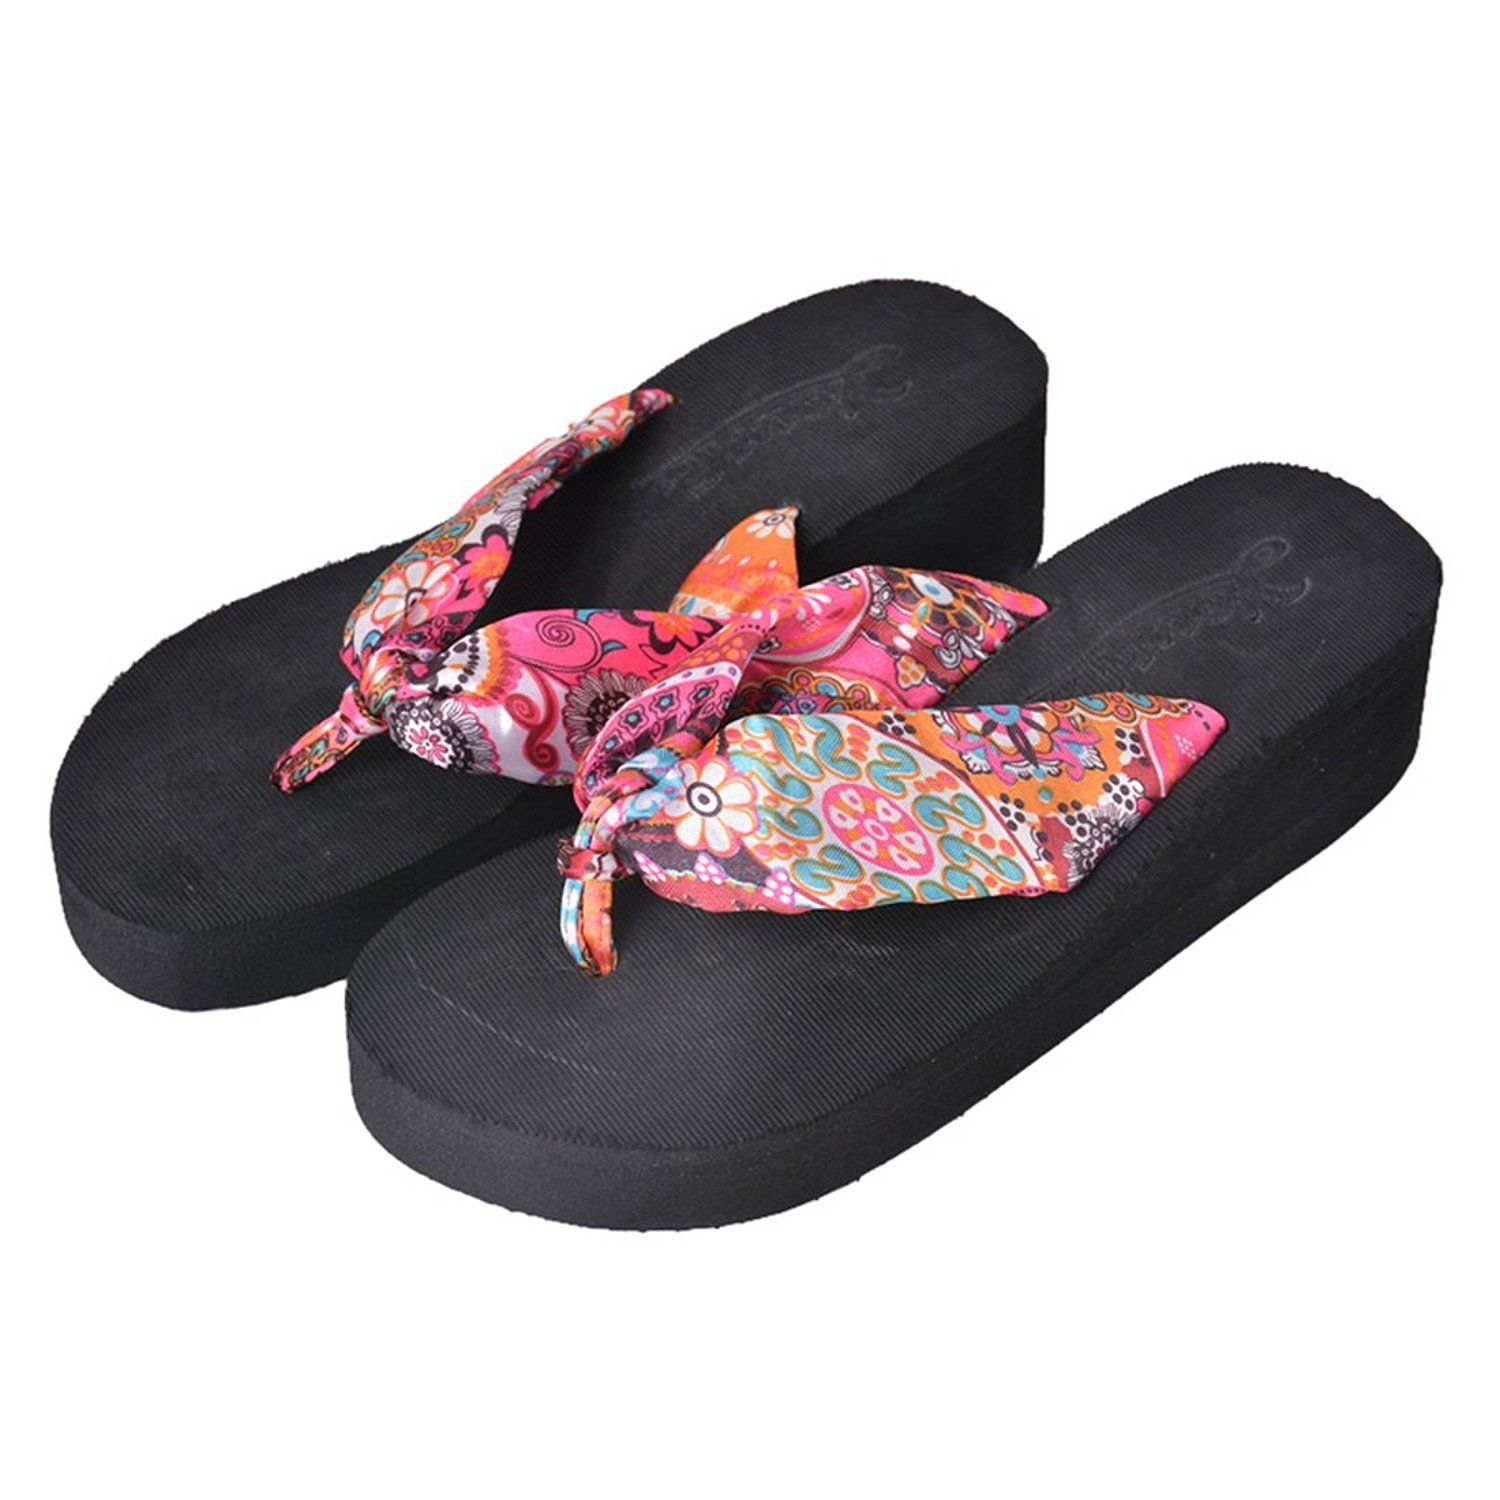 Vertvie Woman Slippers Sandals Summer Floral Bohemian Beach Strap Platform Flower Sandals -- Be sure to check out this awesome product.